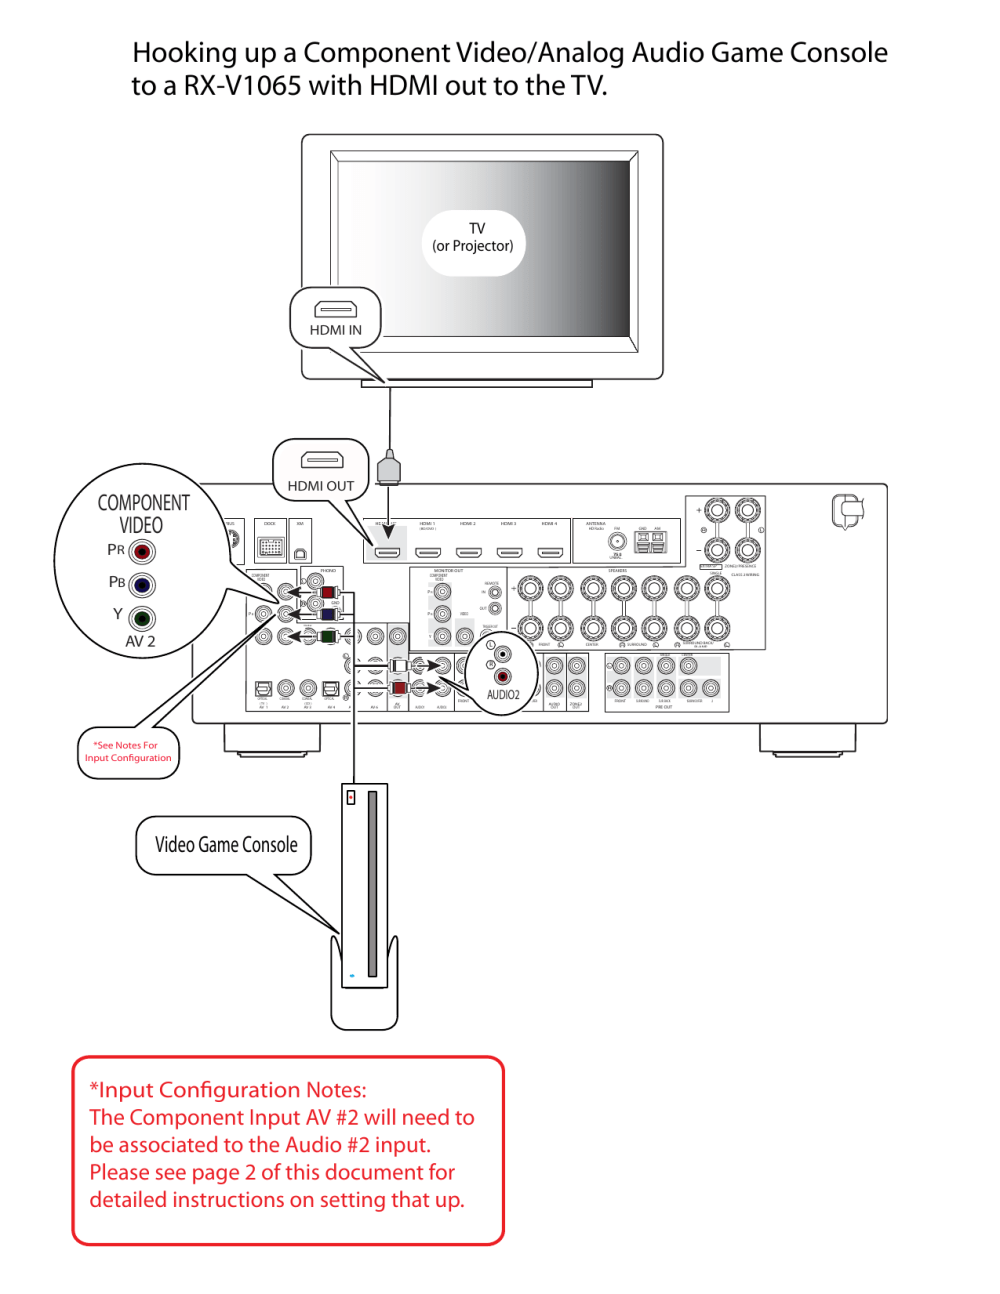 medium resolution of yamaha rx v1065 game console hookup diagram for component video analog audio